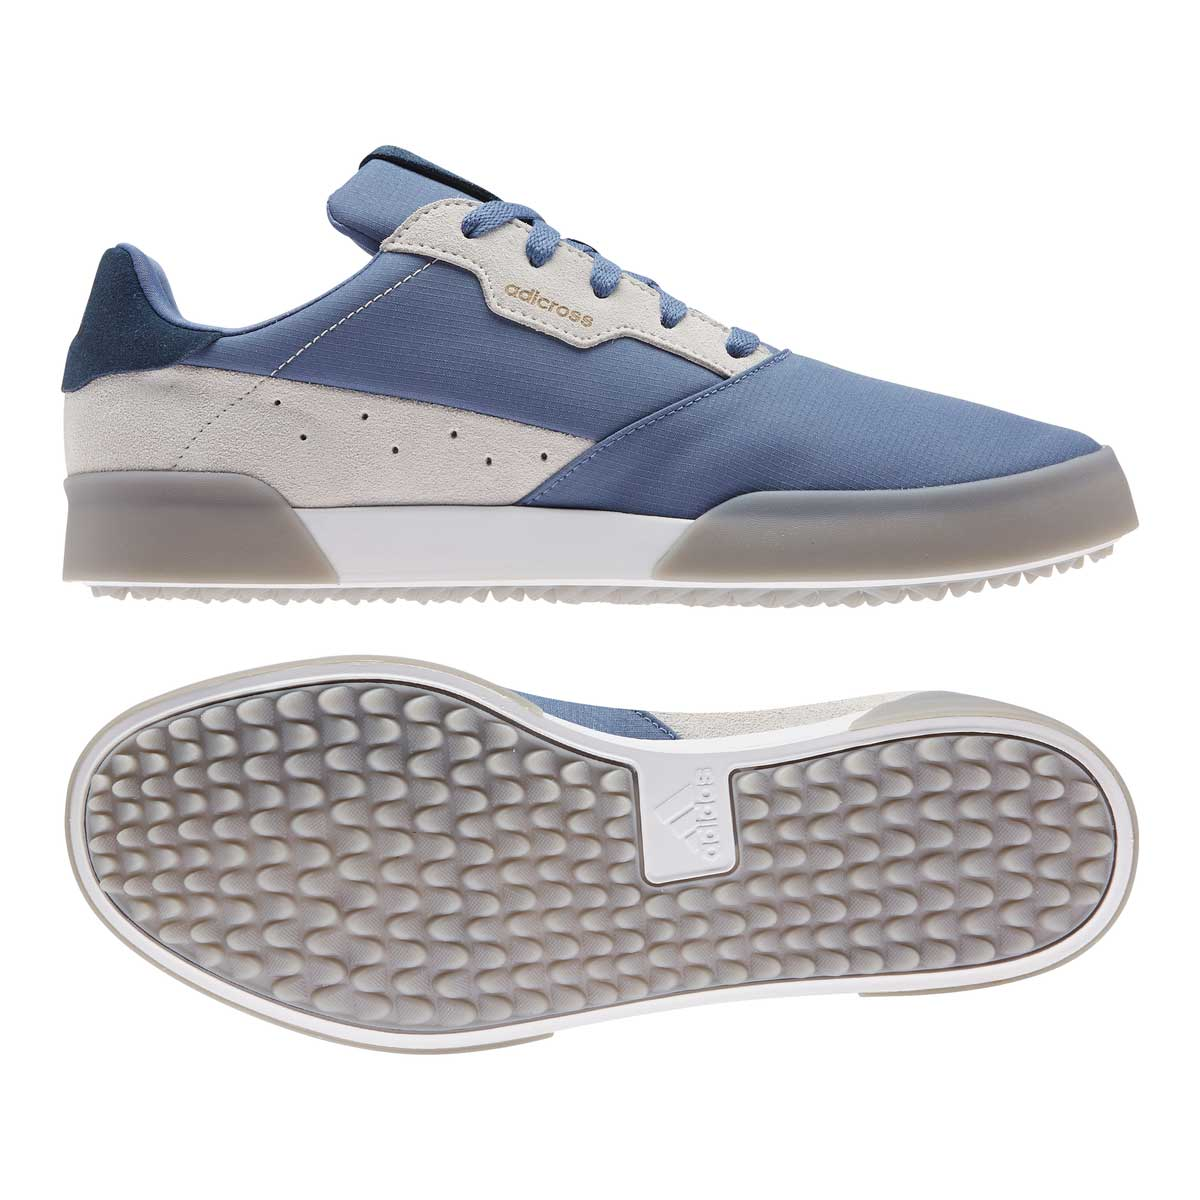 Adidas Men's Adicross Retro Crew Blue Spikeless Golf Shoe